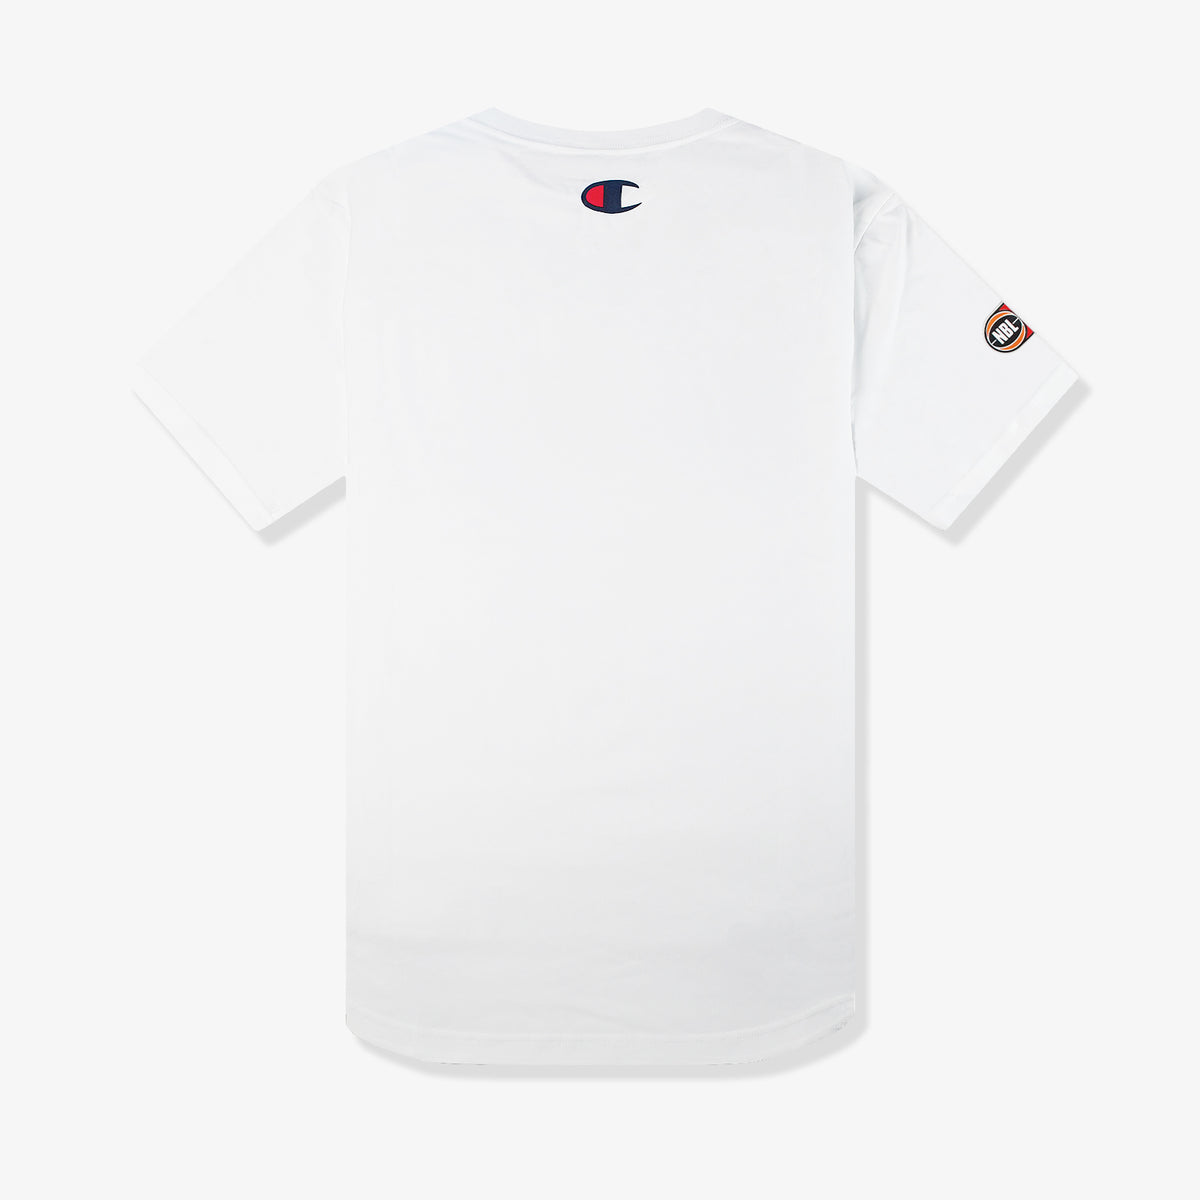 Hawks NBL Wordmark Lifestyle Tee - White